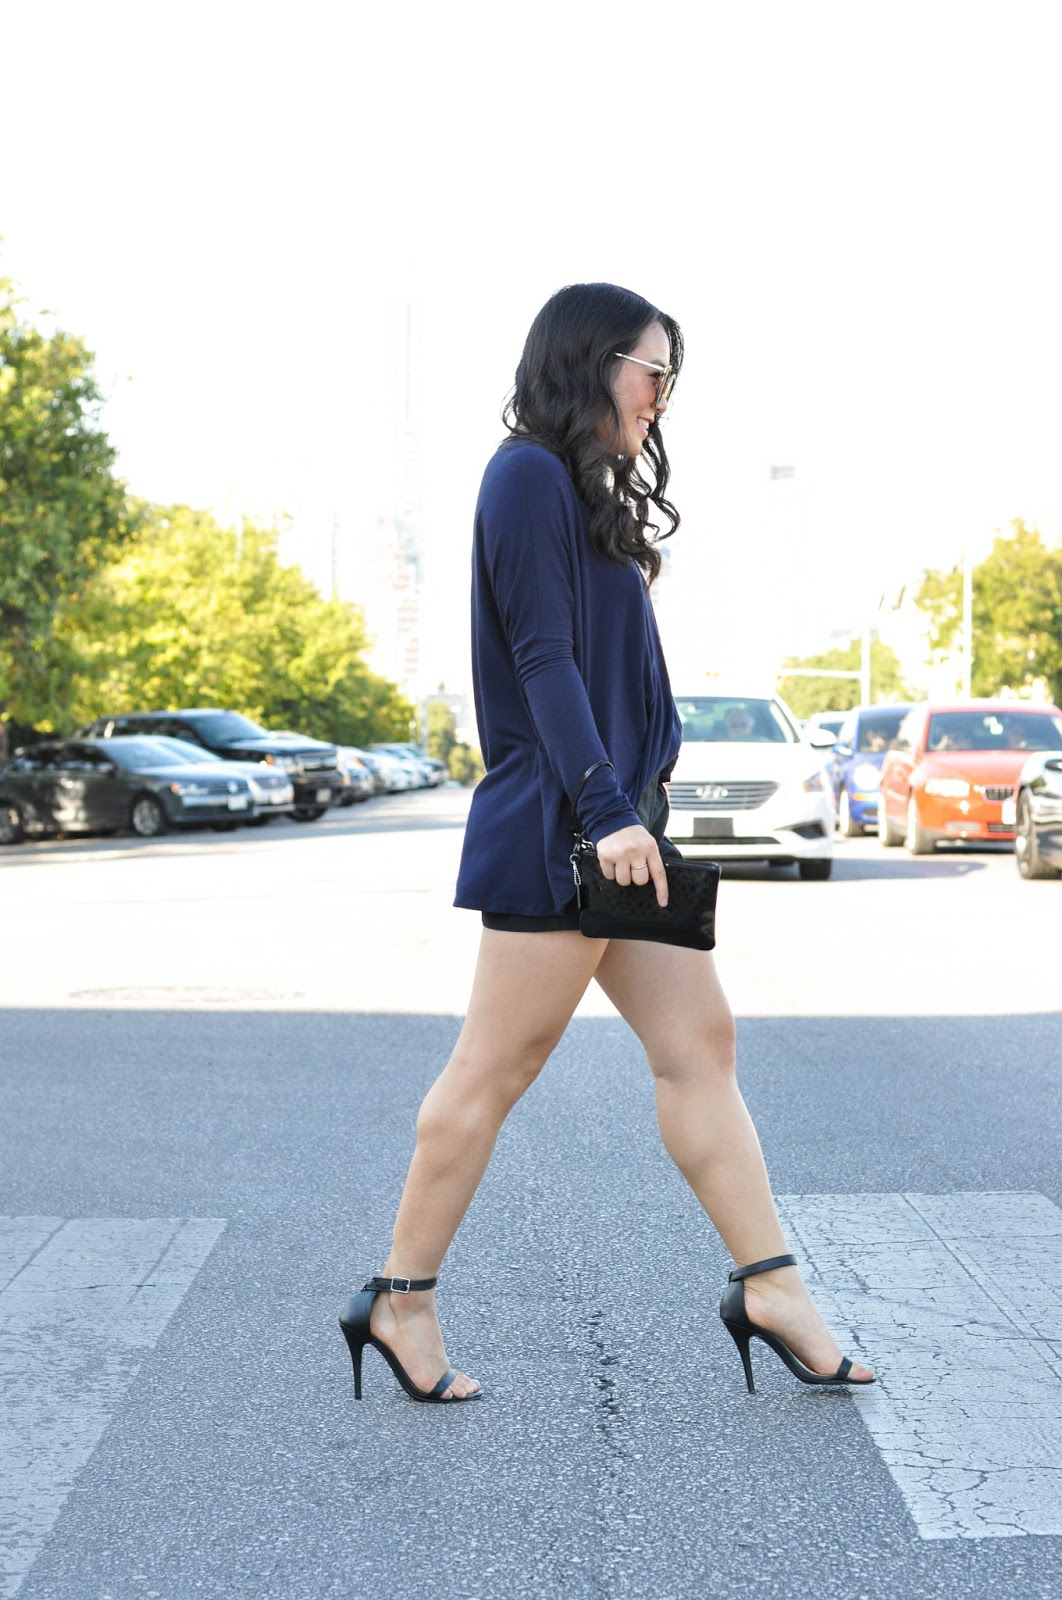 nordstrom black strap heels tobi blue top south congress austin